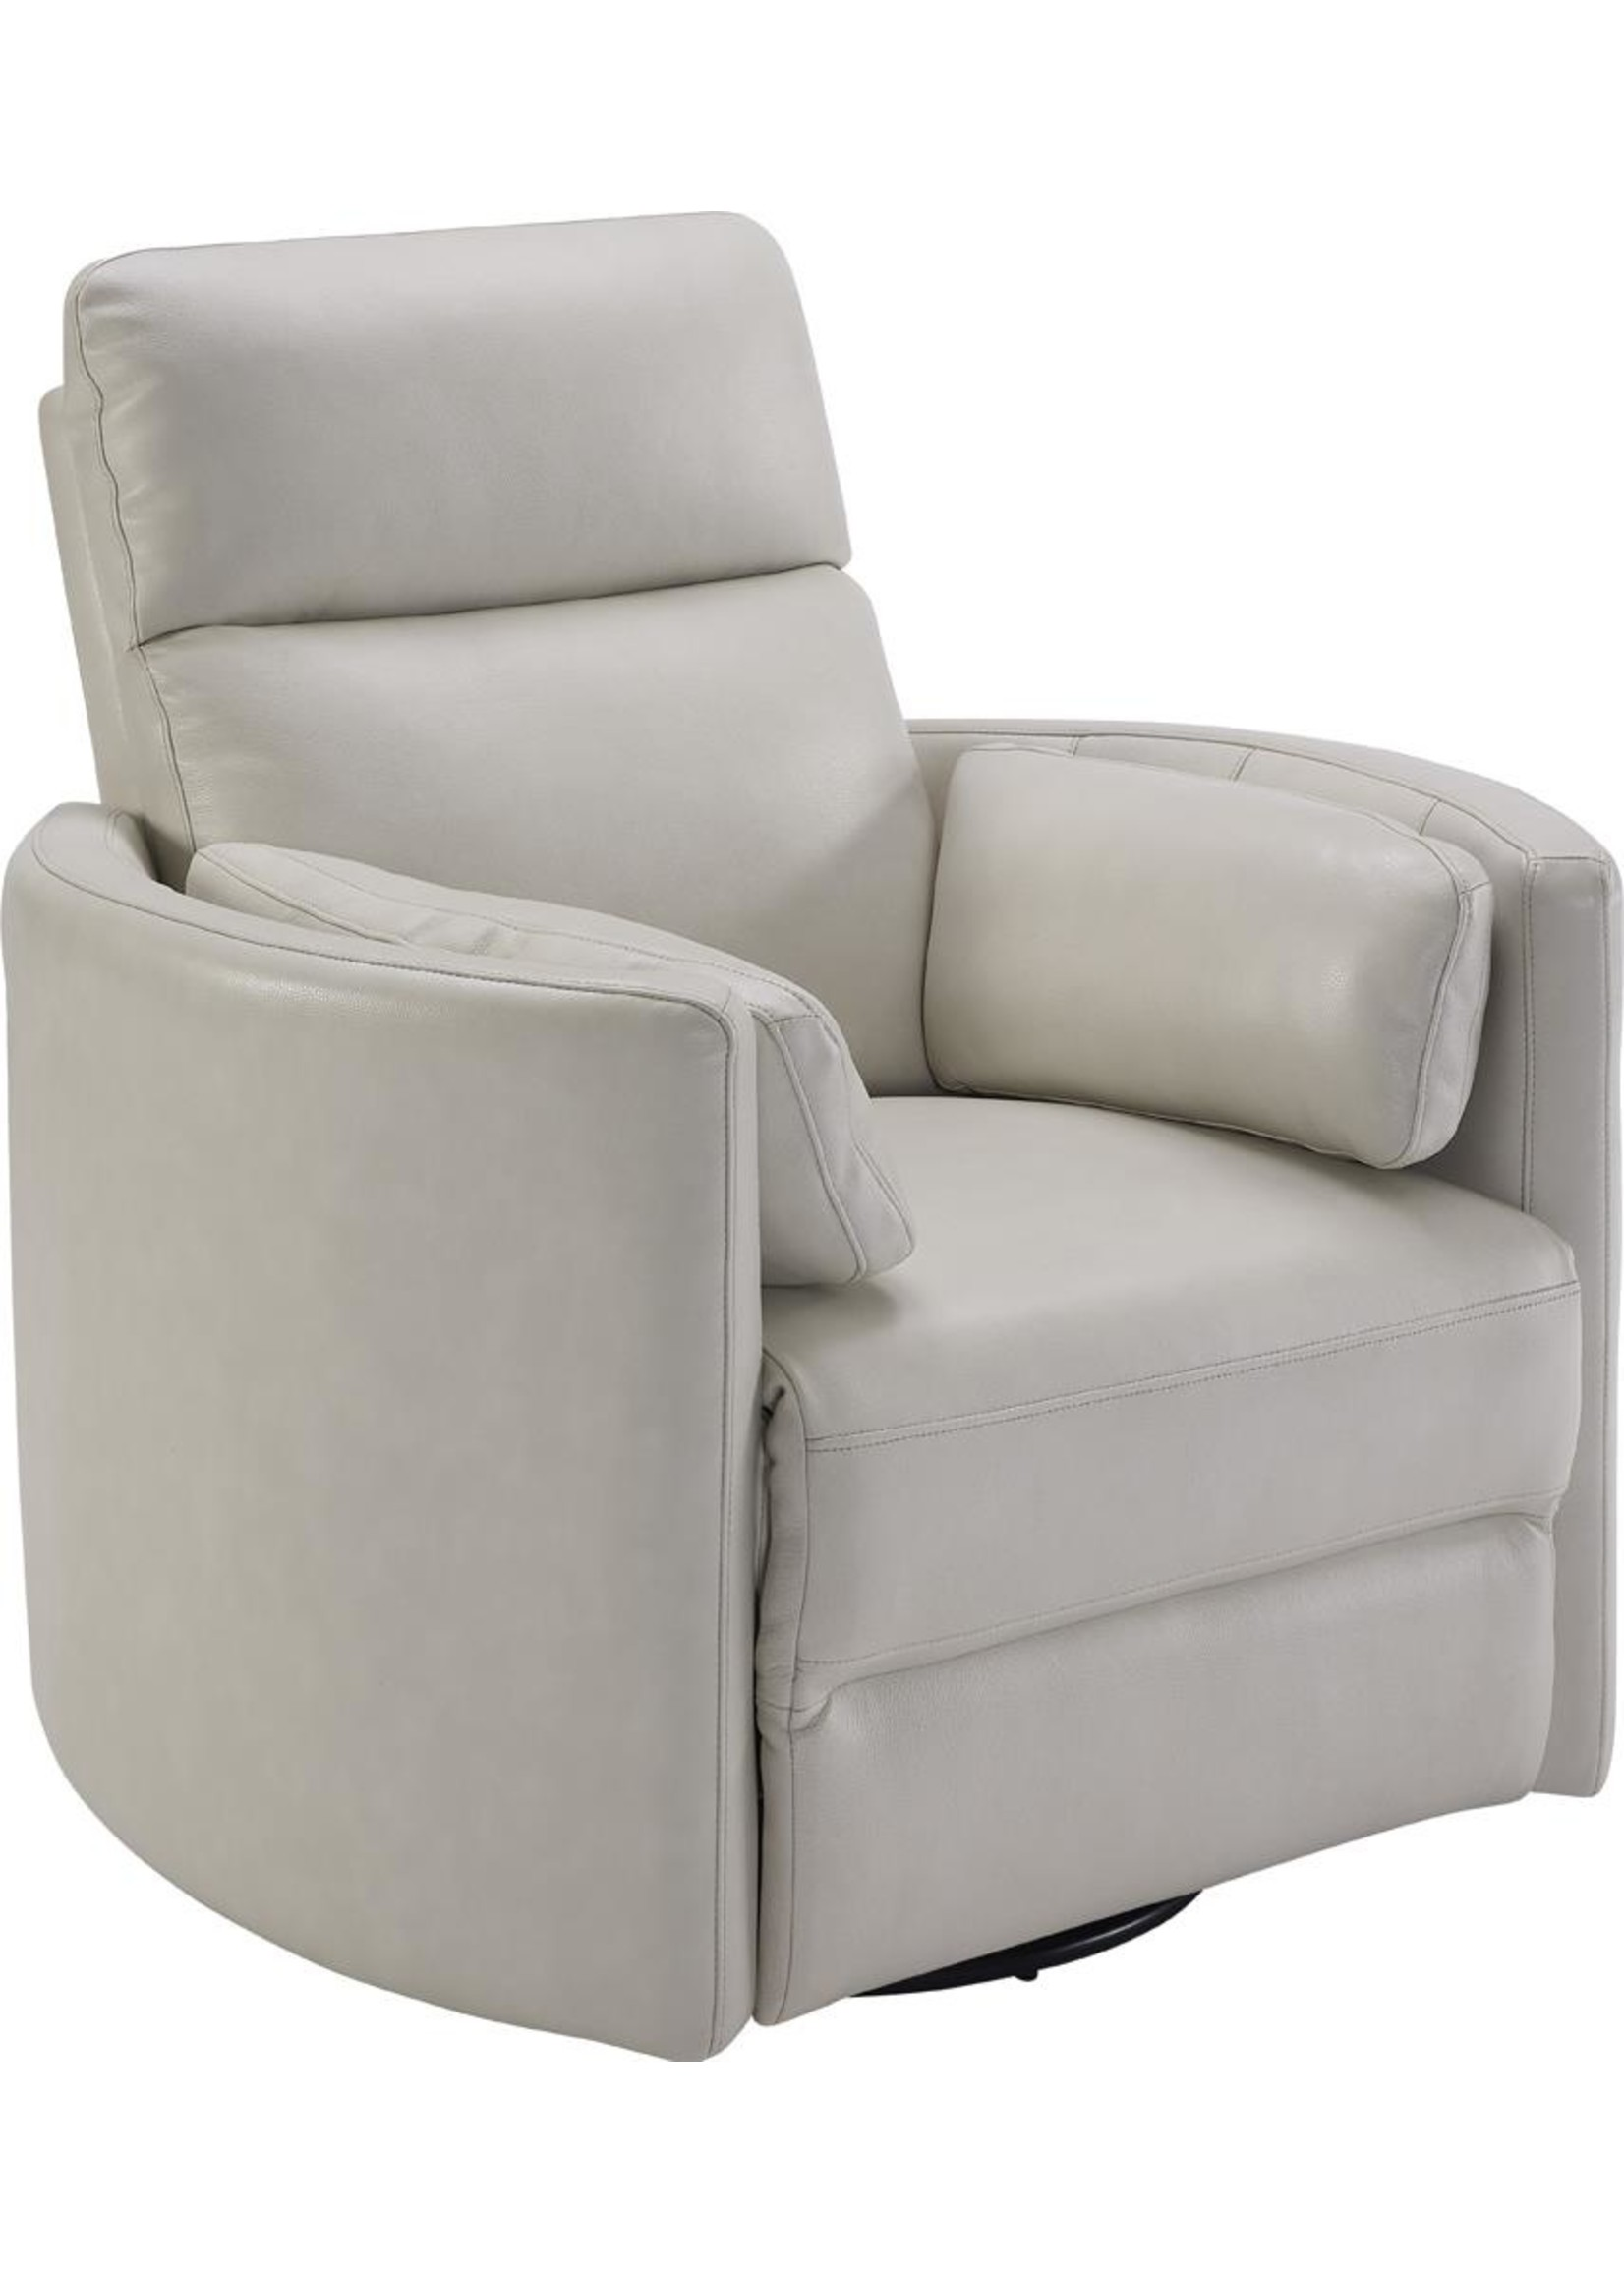 New Ph Radius Ivory Florance Real Leather Recliner